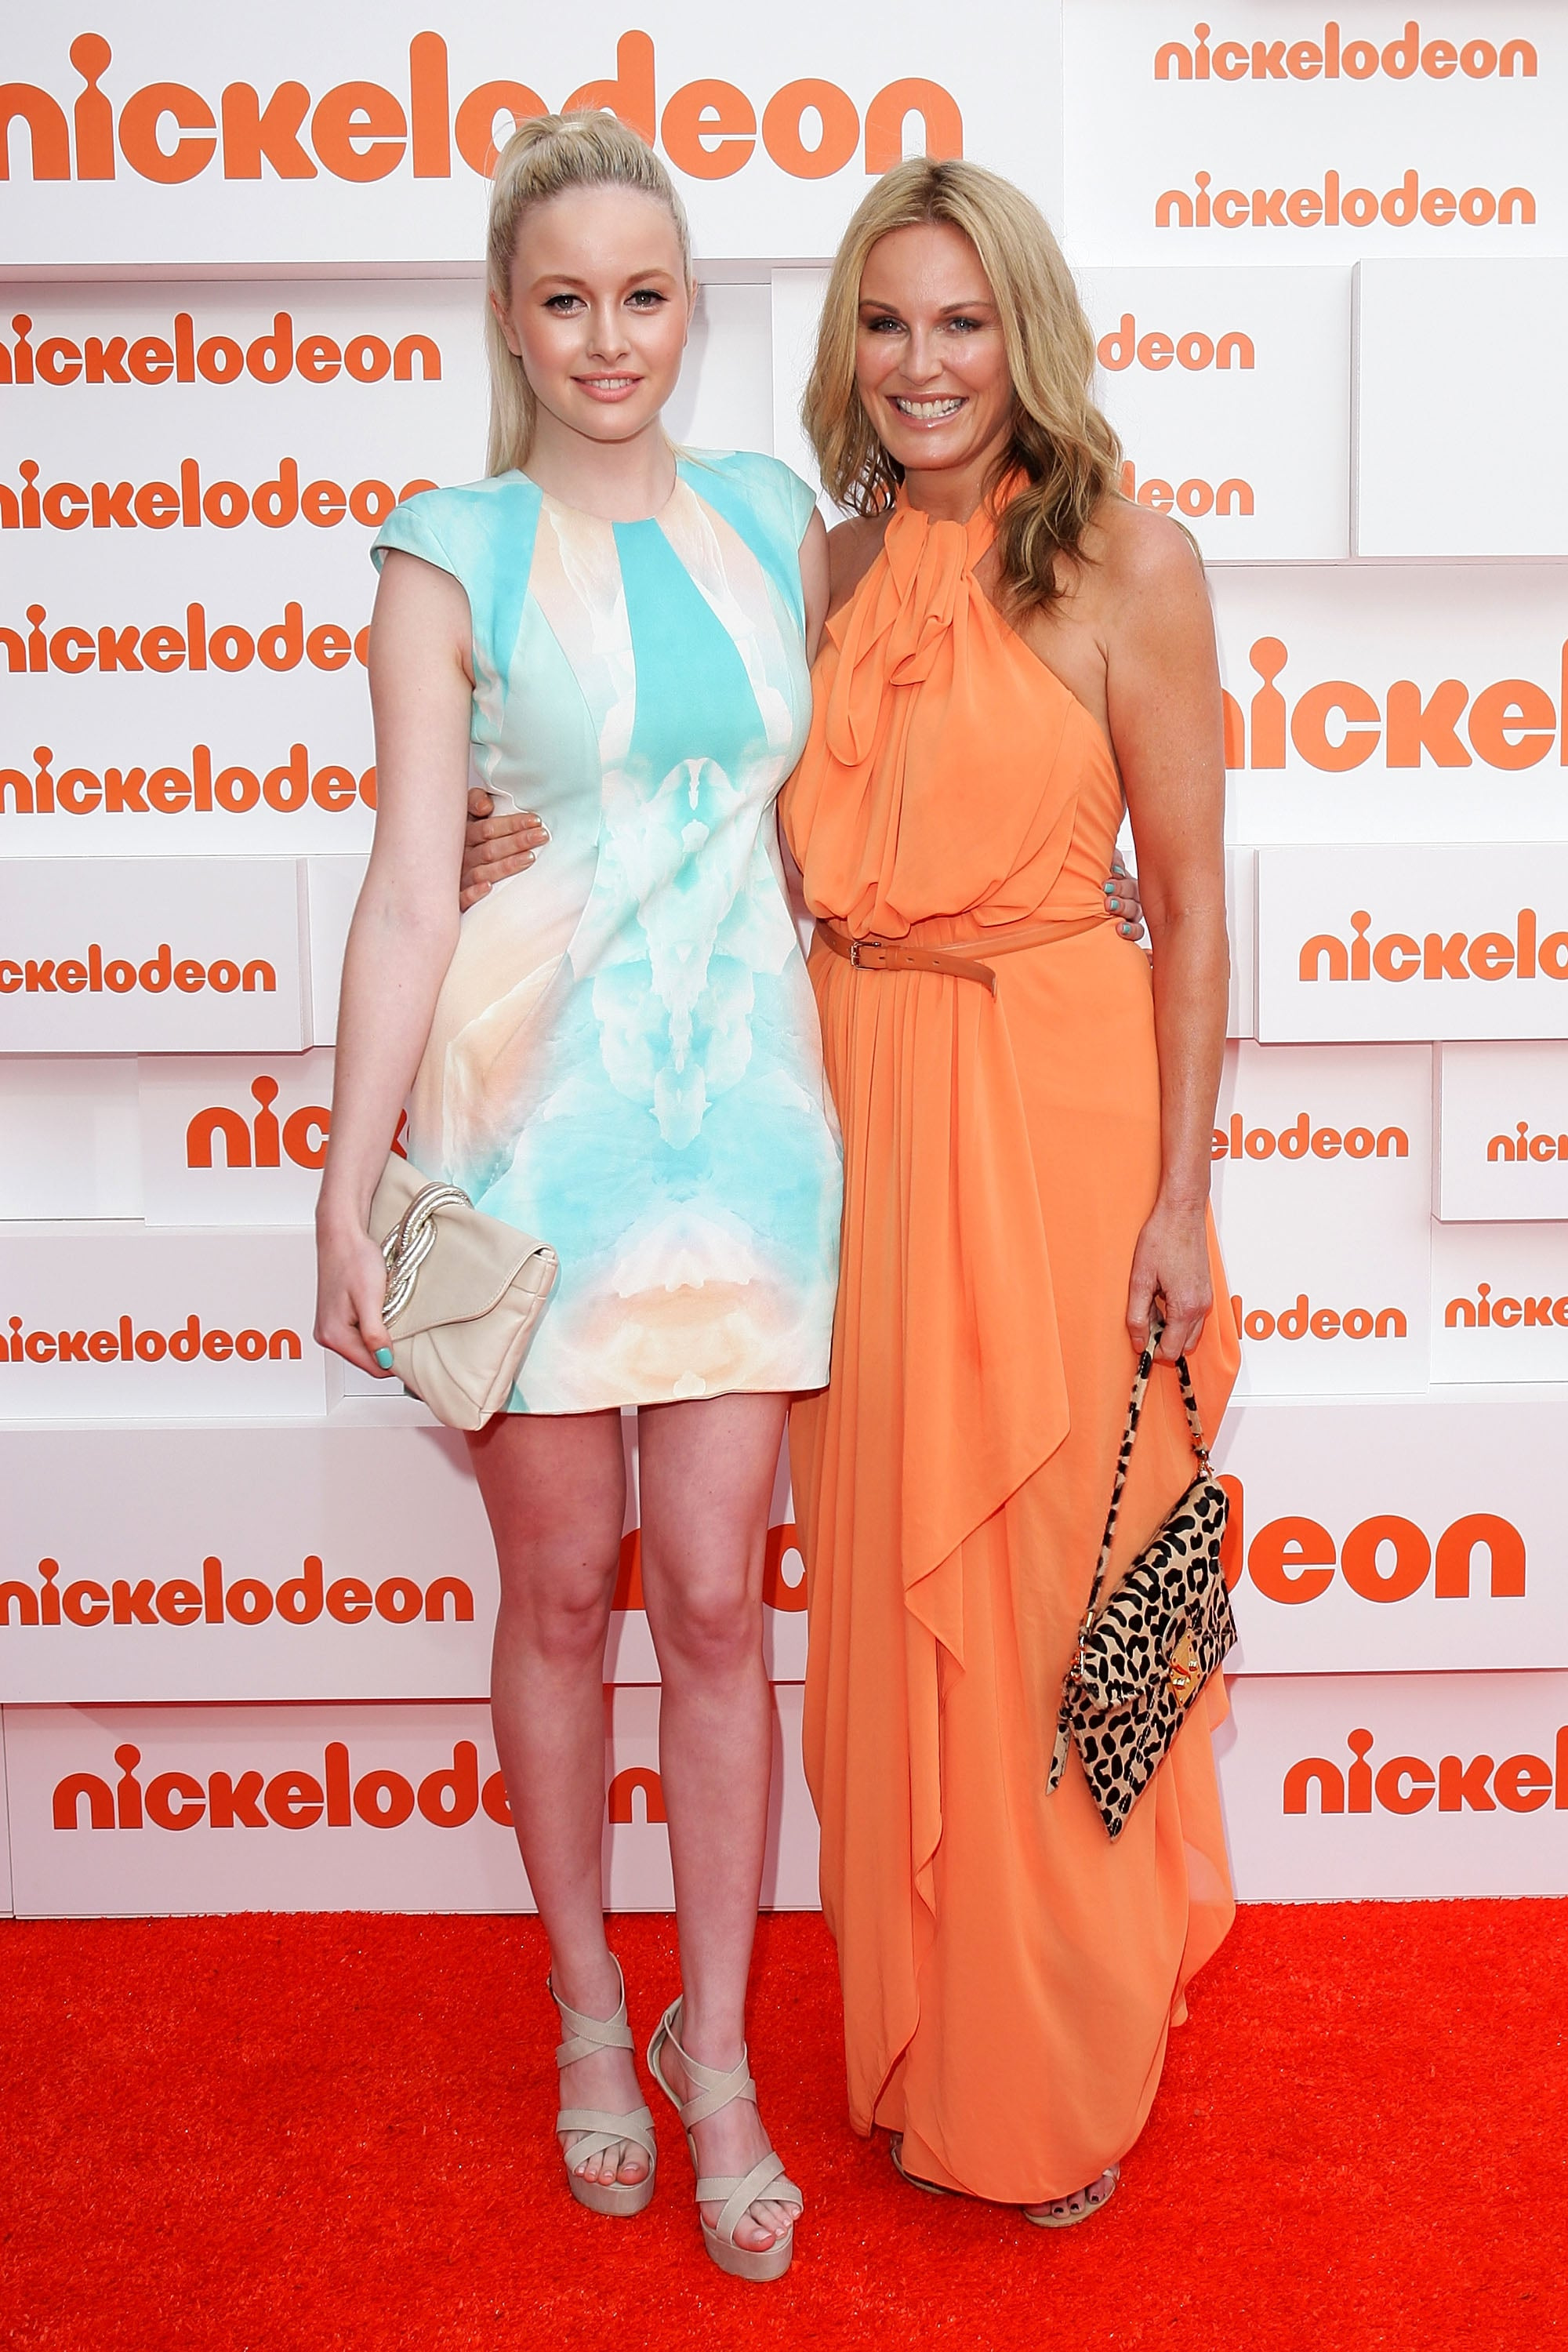 Simone Holtznagel and Charlotte Dawson